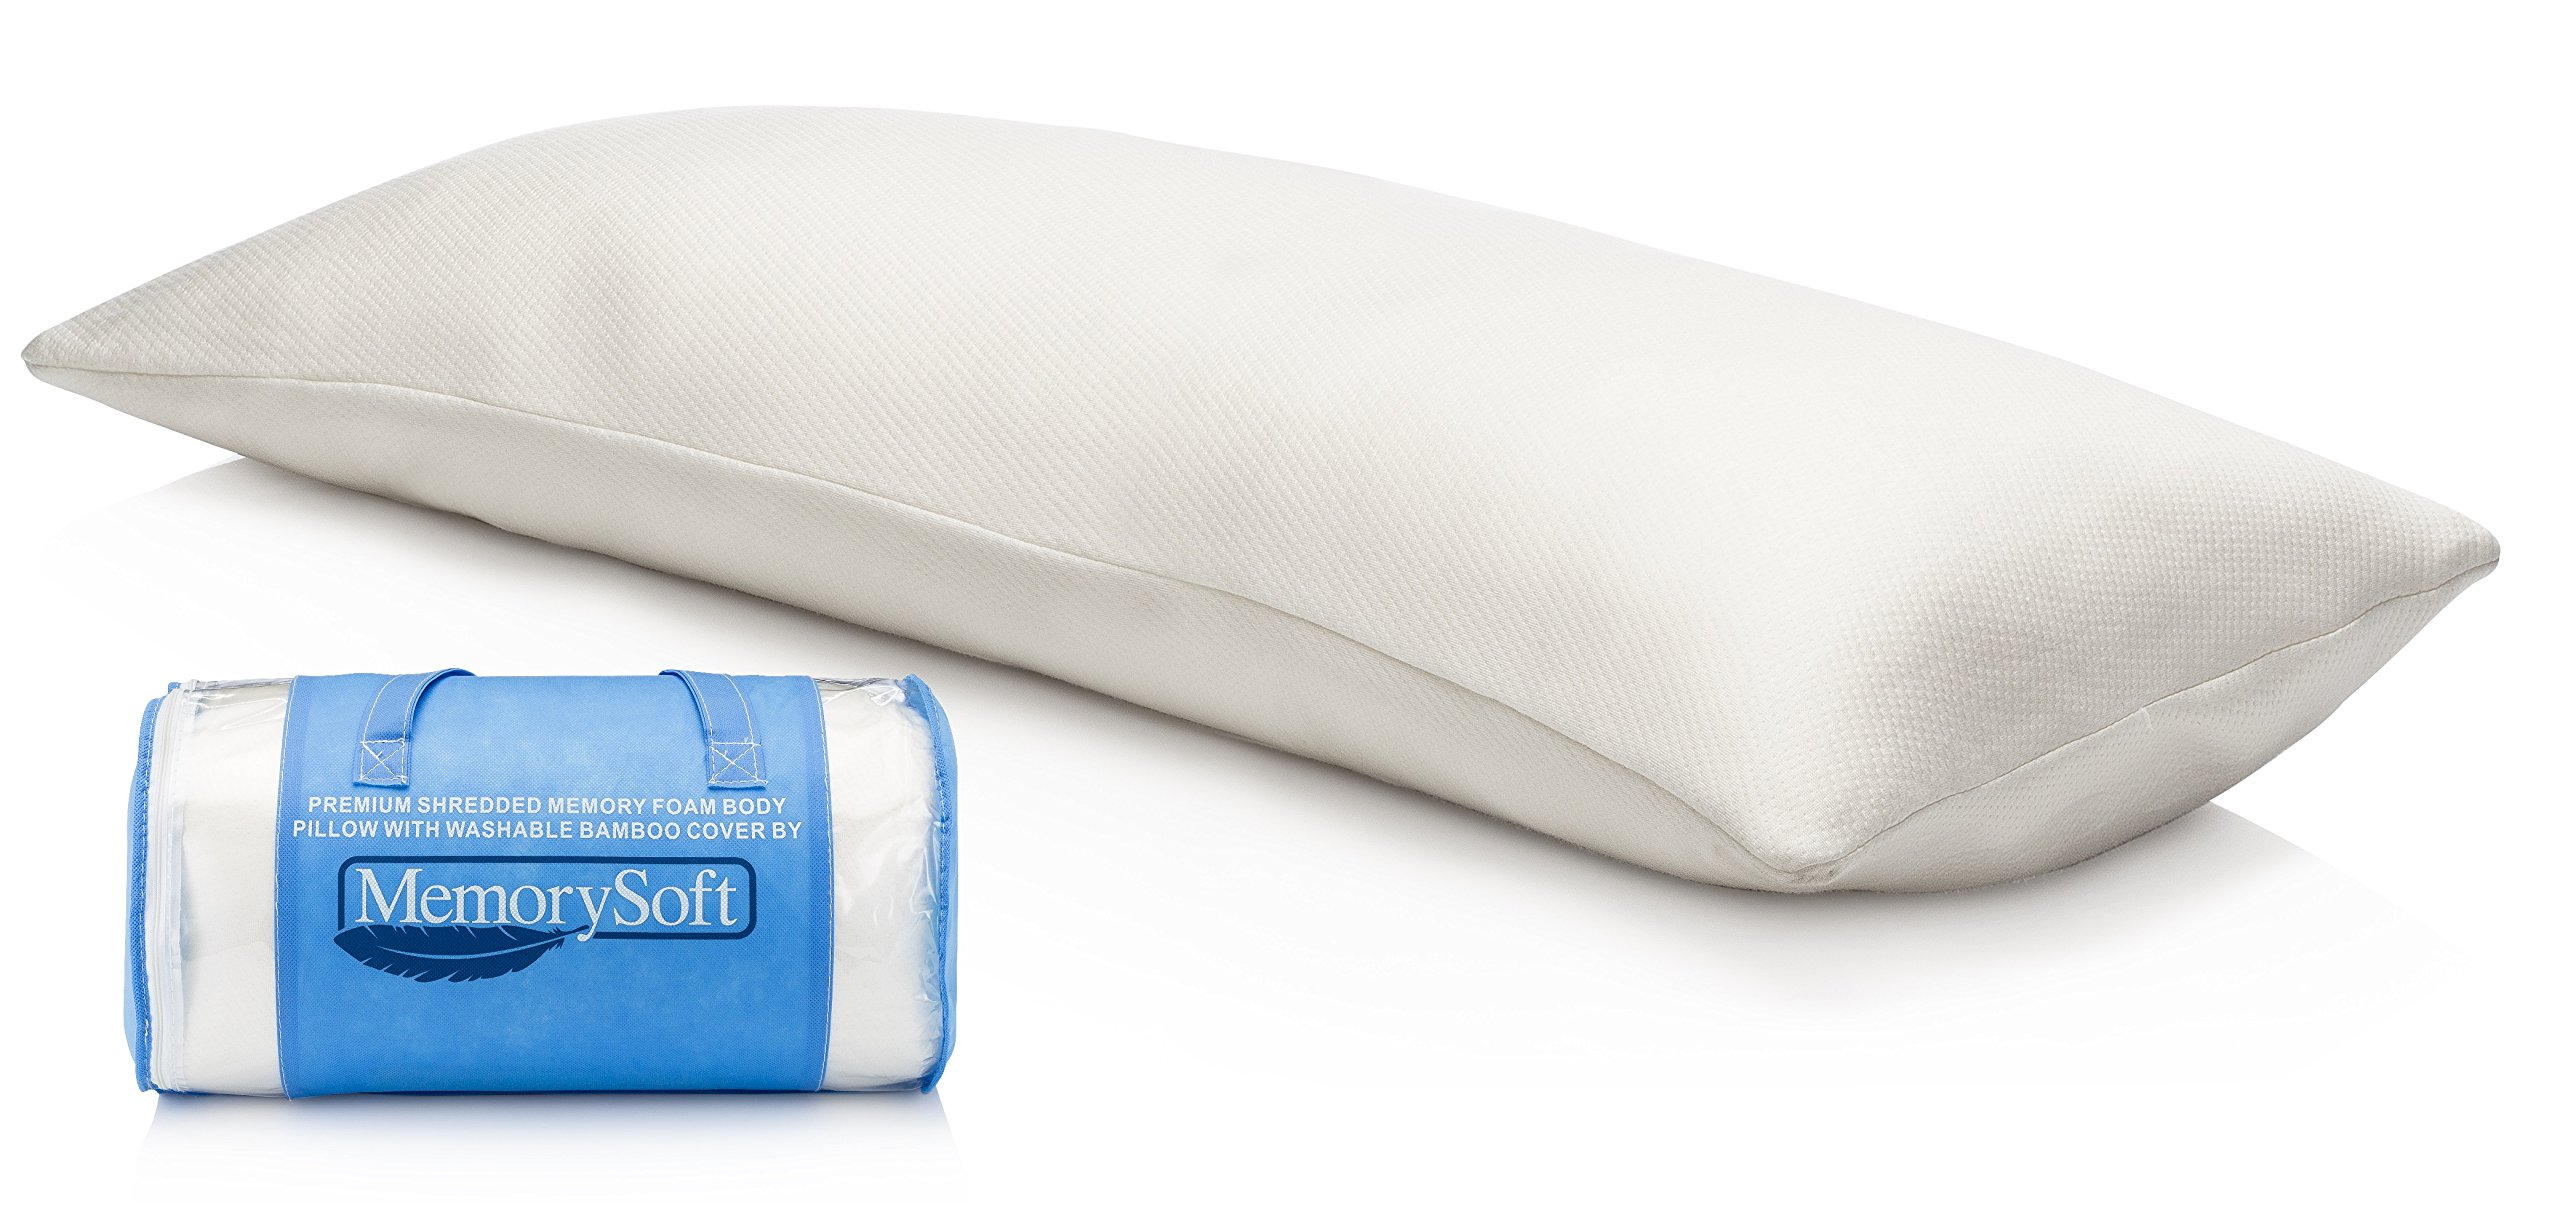 MemorySoft Luxury Memory Foam Body Pillow By, Shredded Memory Foam With Thin Memory Foam Shell - Washable, Hypoallergenic and Cool Bamboo Case